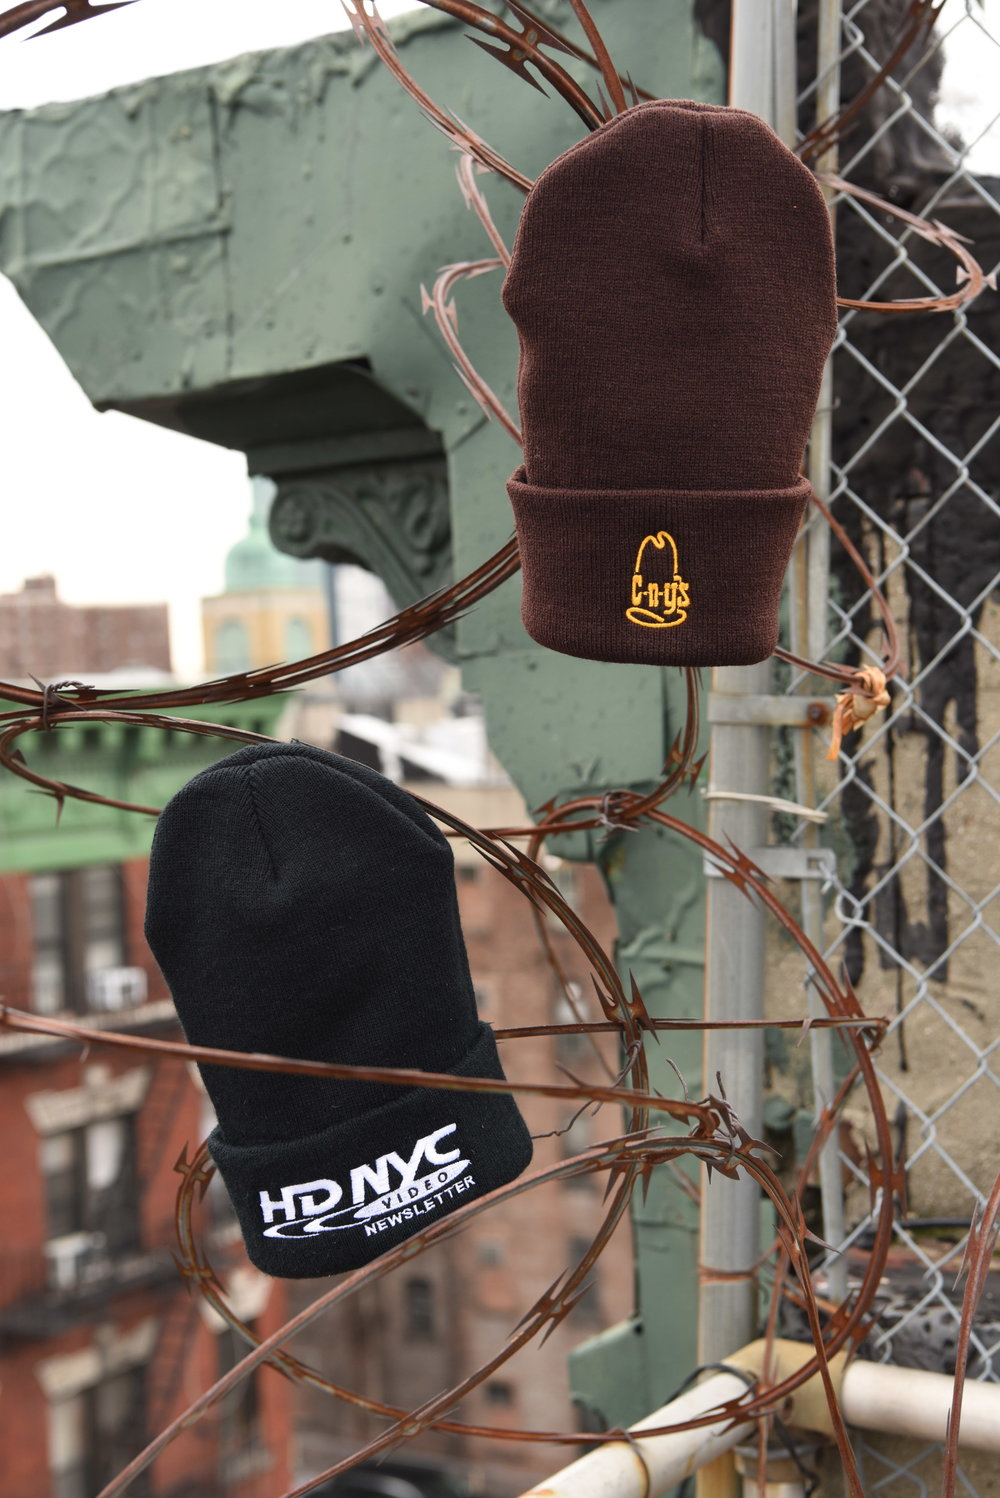 CNY BEANIE ---- HD NYC VIDEO NEWSLETTER BLACK BEANIE  +++++ CNY's BROWN BEANIE